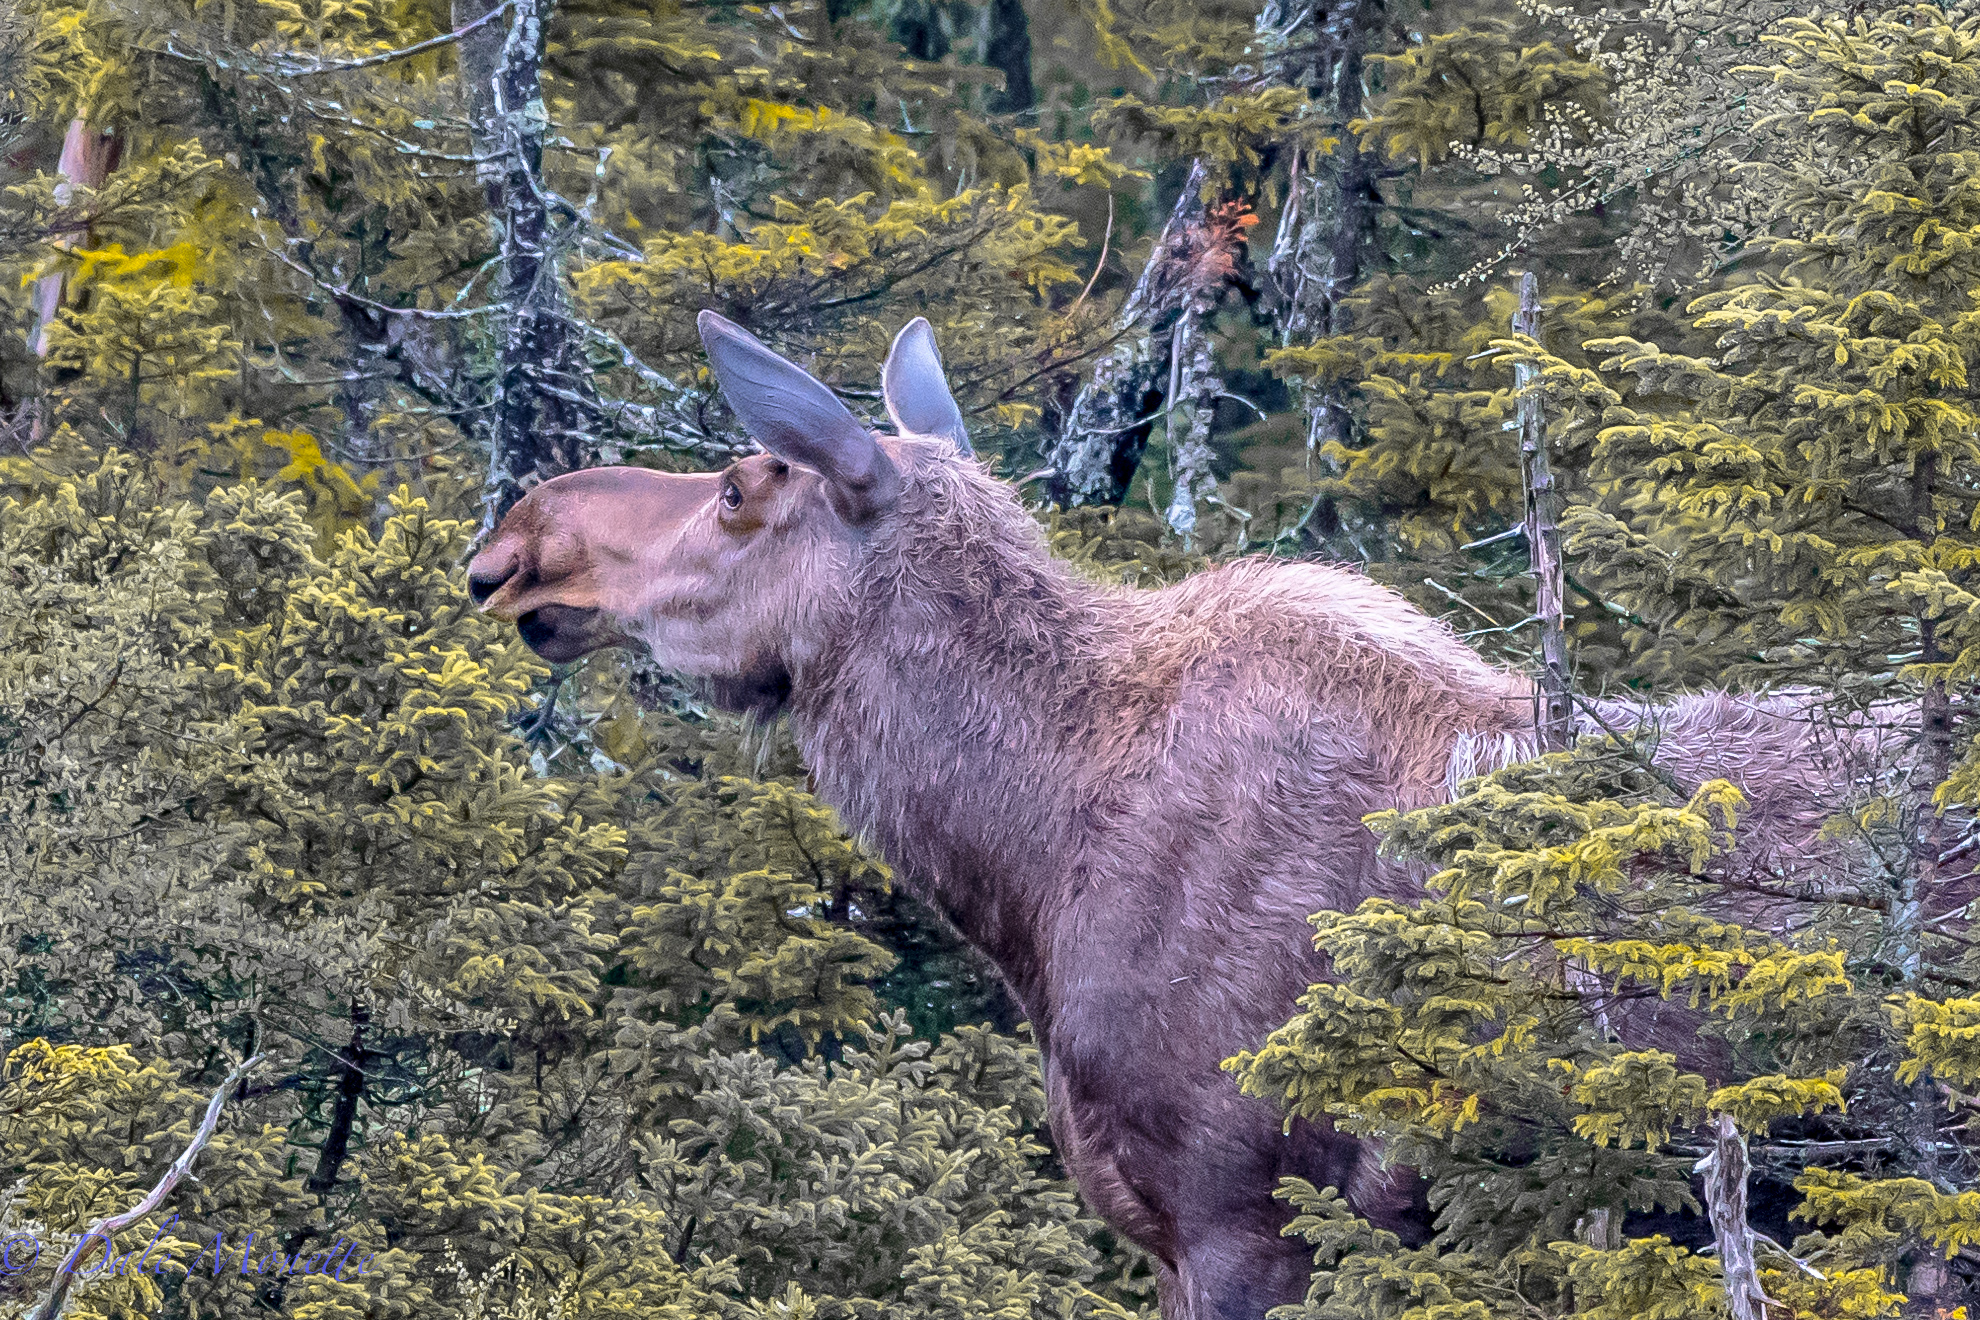 A female moose detects maybe another moose clumping through the woods or she sniffs another one coming. They have a great sense of smell. Benji's Lake, Cape Breton Highlands National Park, Nova Scotia. 6/21/16